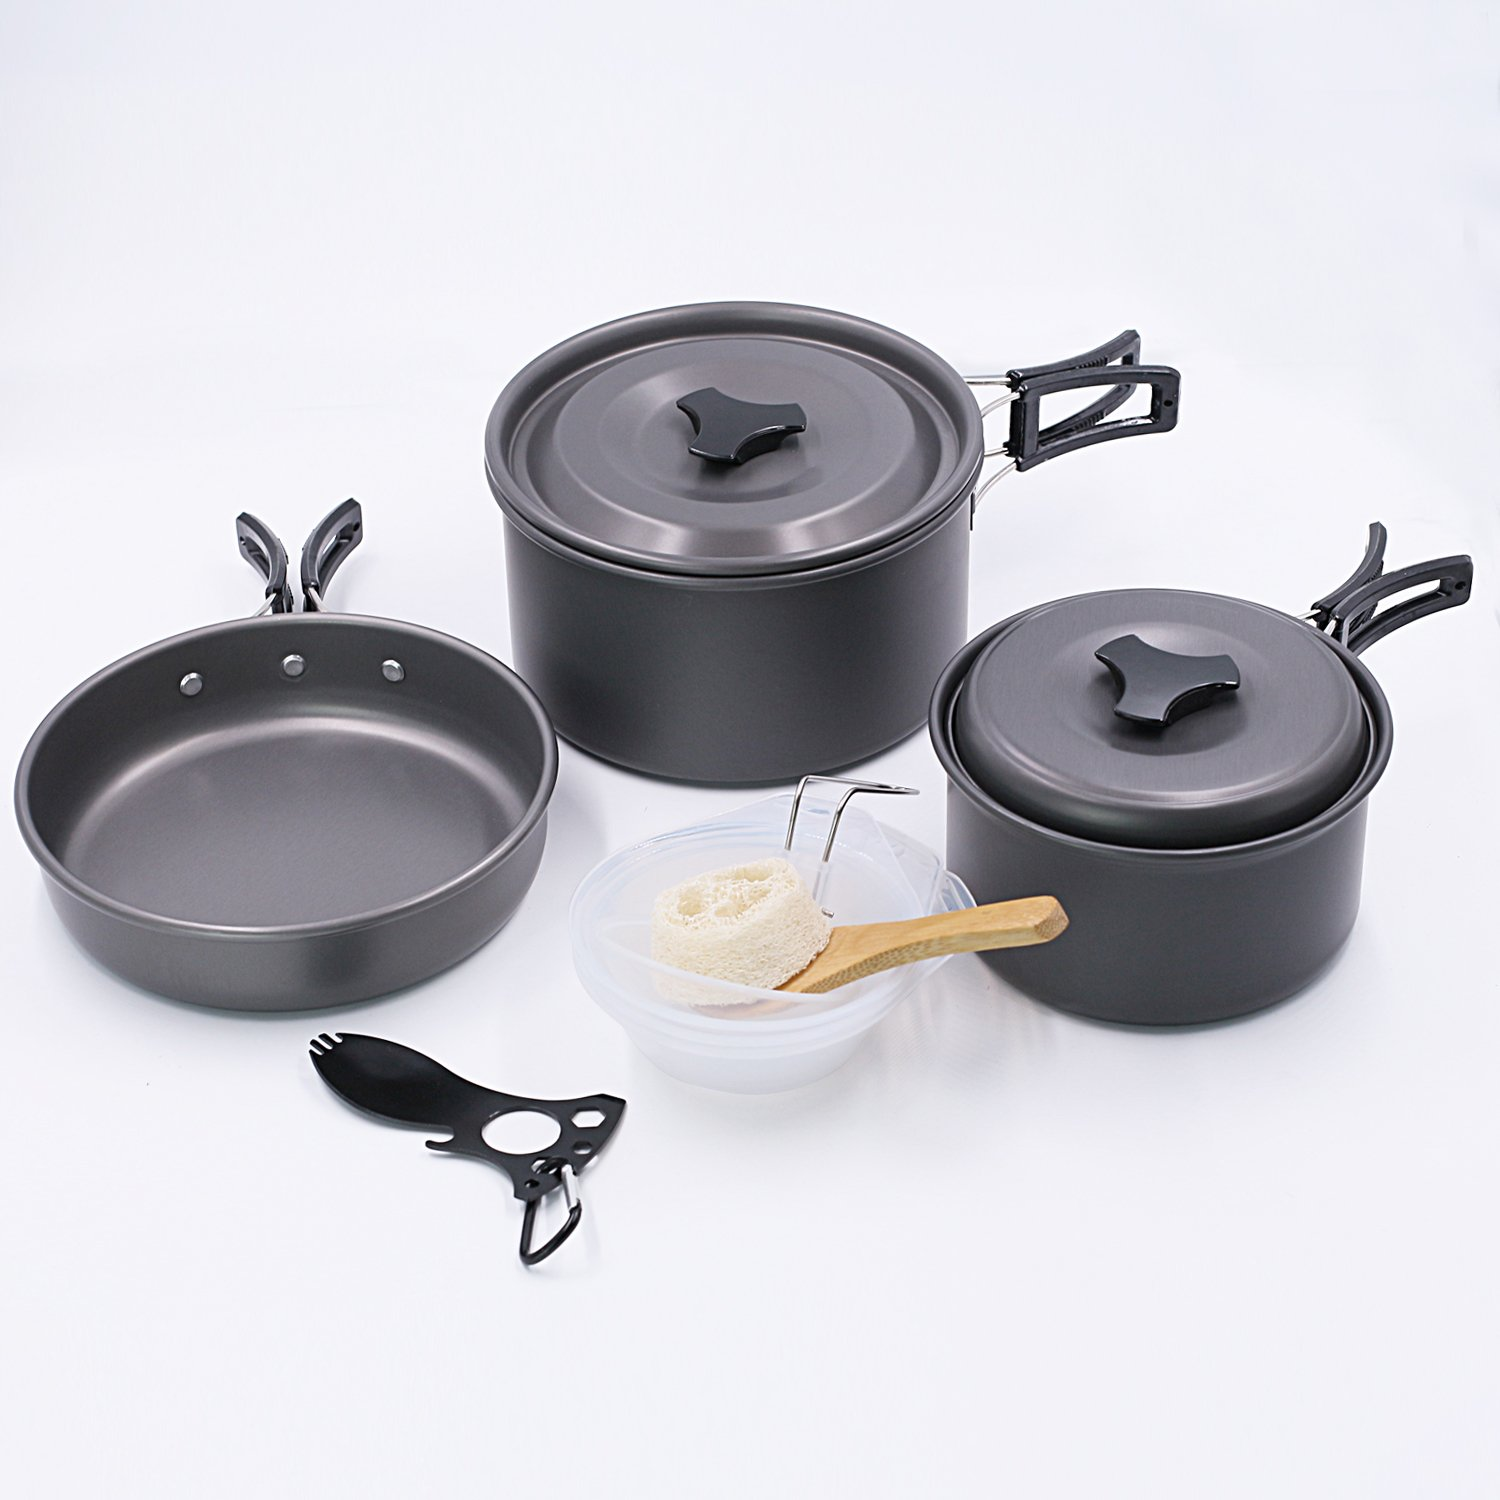 Startostar 13pcs Camping Cookware For 2 3 People Backpacking Cooking Picnic Bowl Pot Pan